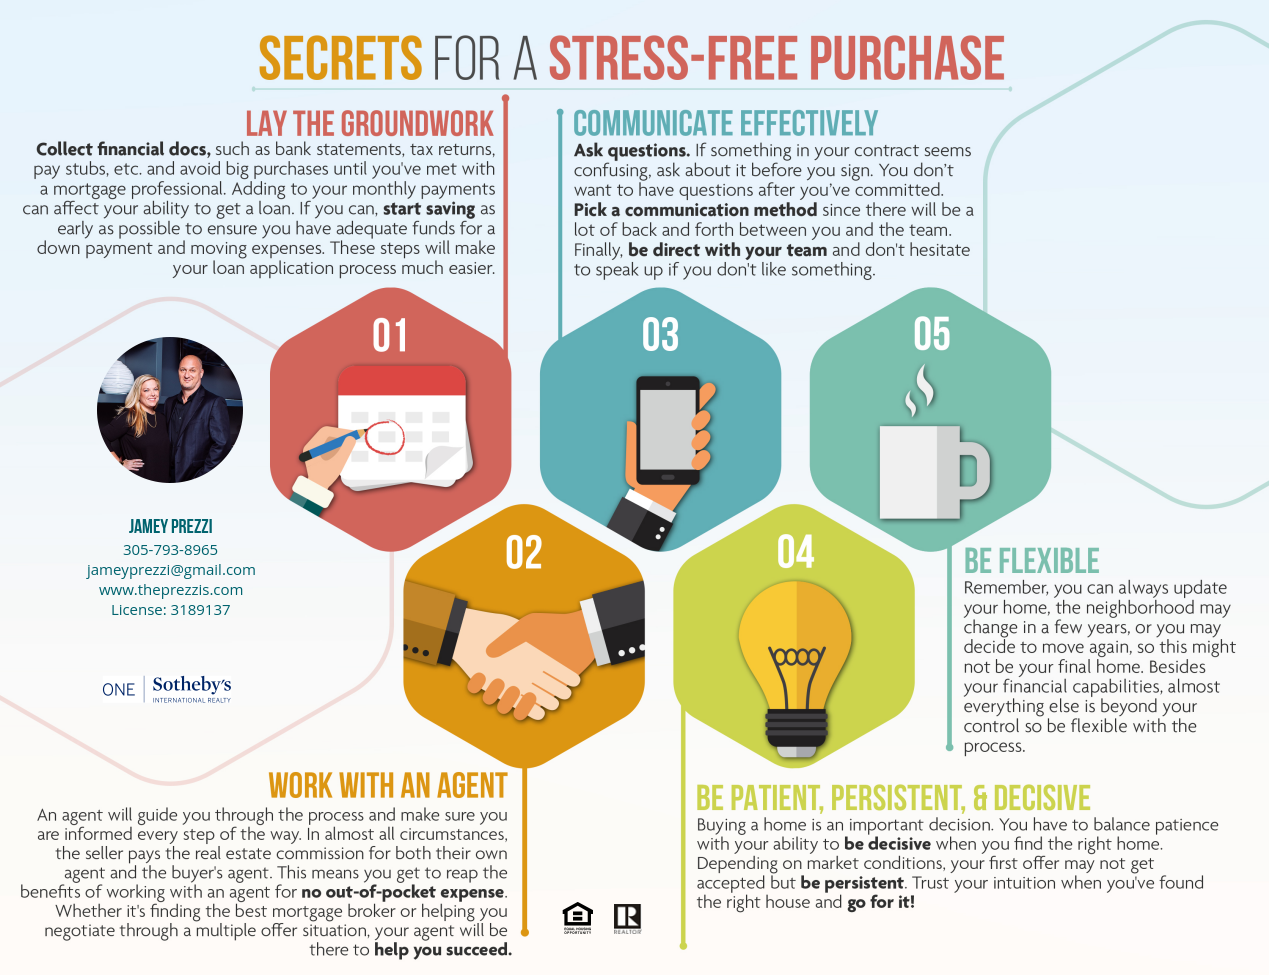 StressFreeTransaction-4590499.png